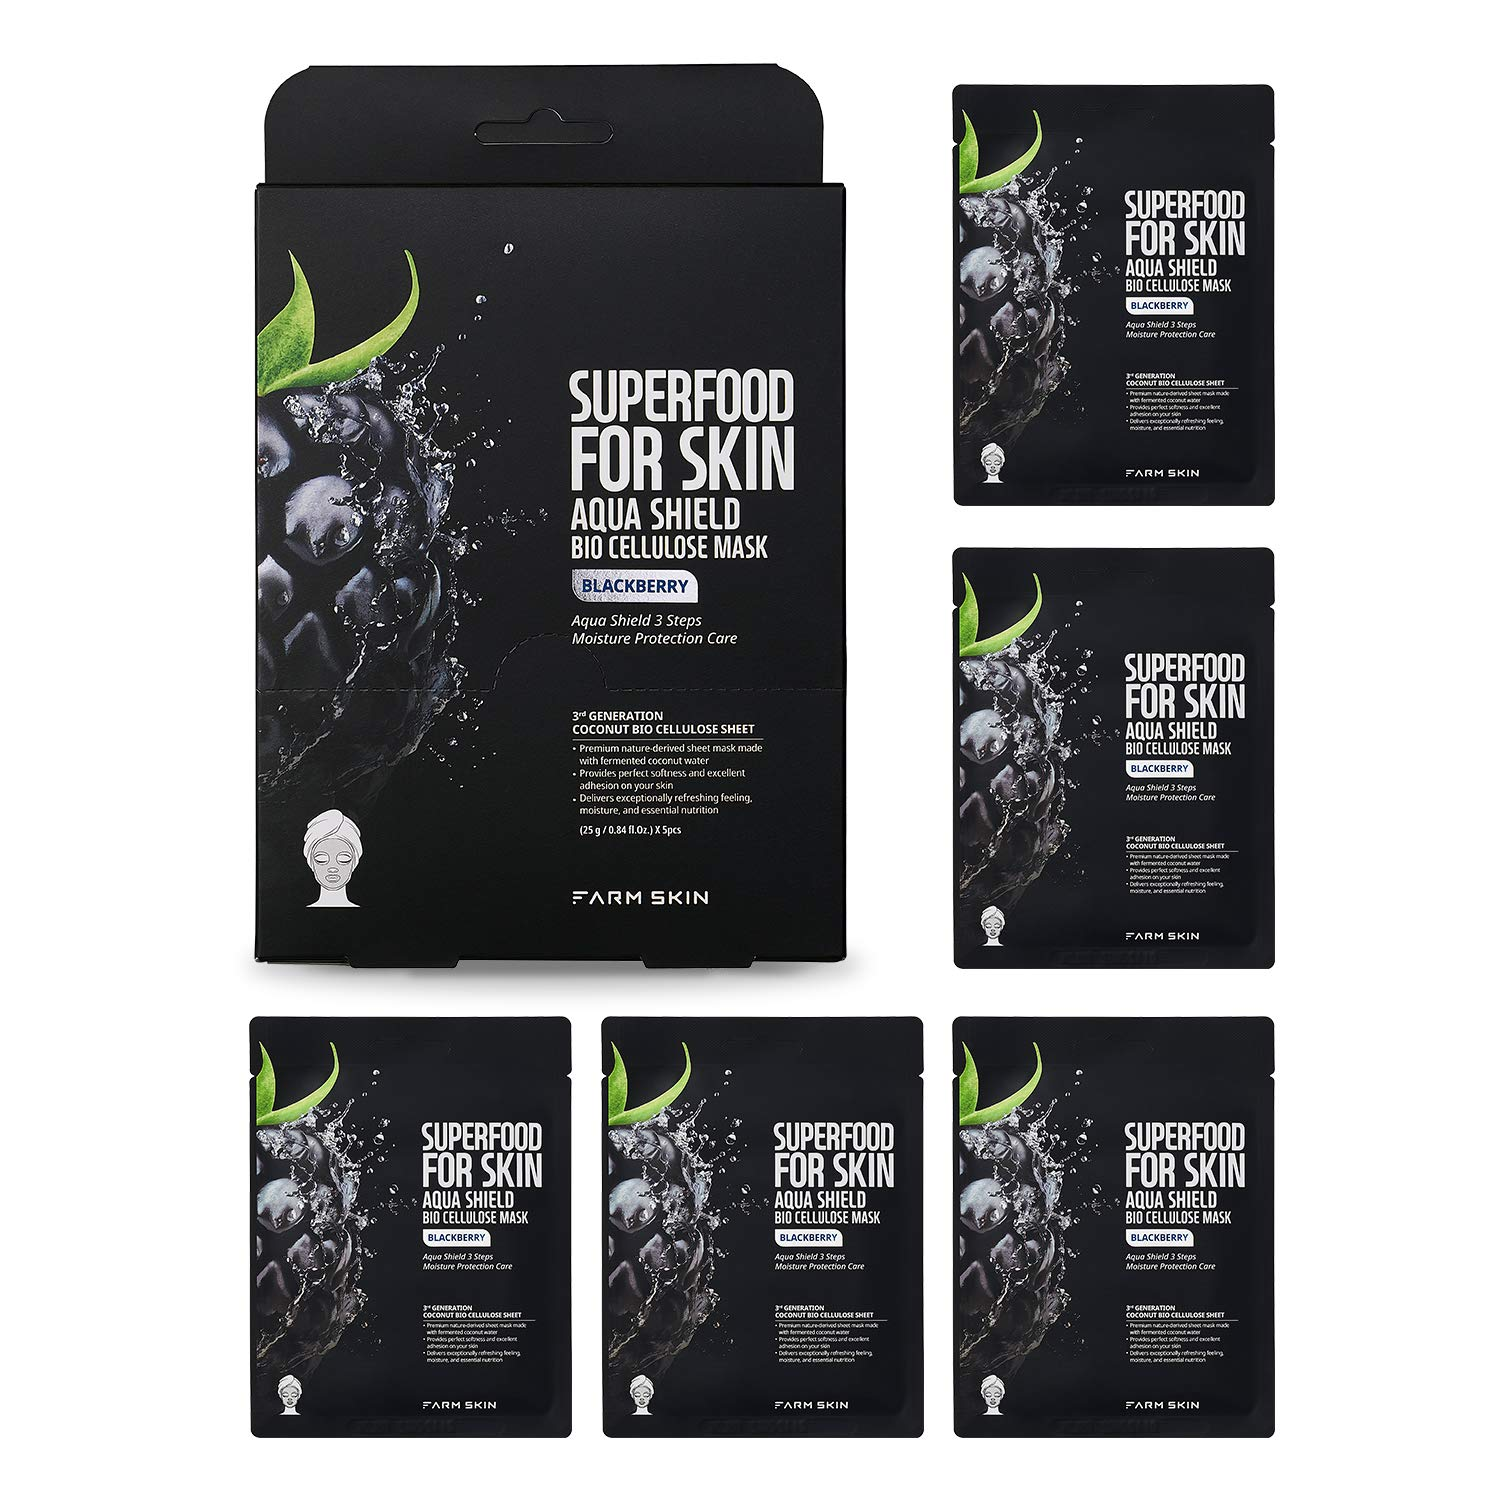 FARMSKIN Superfood Salad For Skin Aqua Shield Bio Cellulose Mask Blackberry for All Skin Types - 5 Sheets